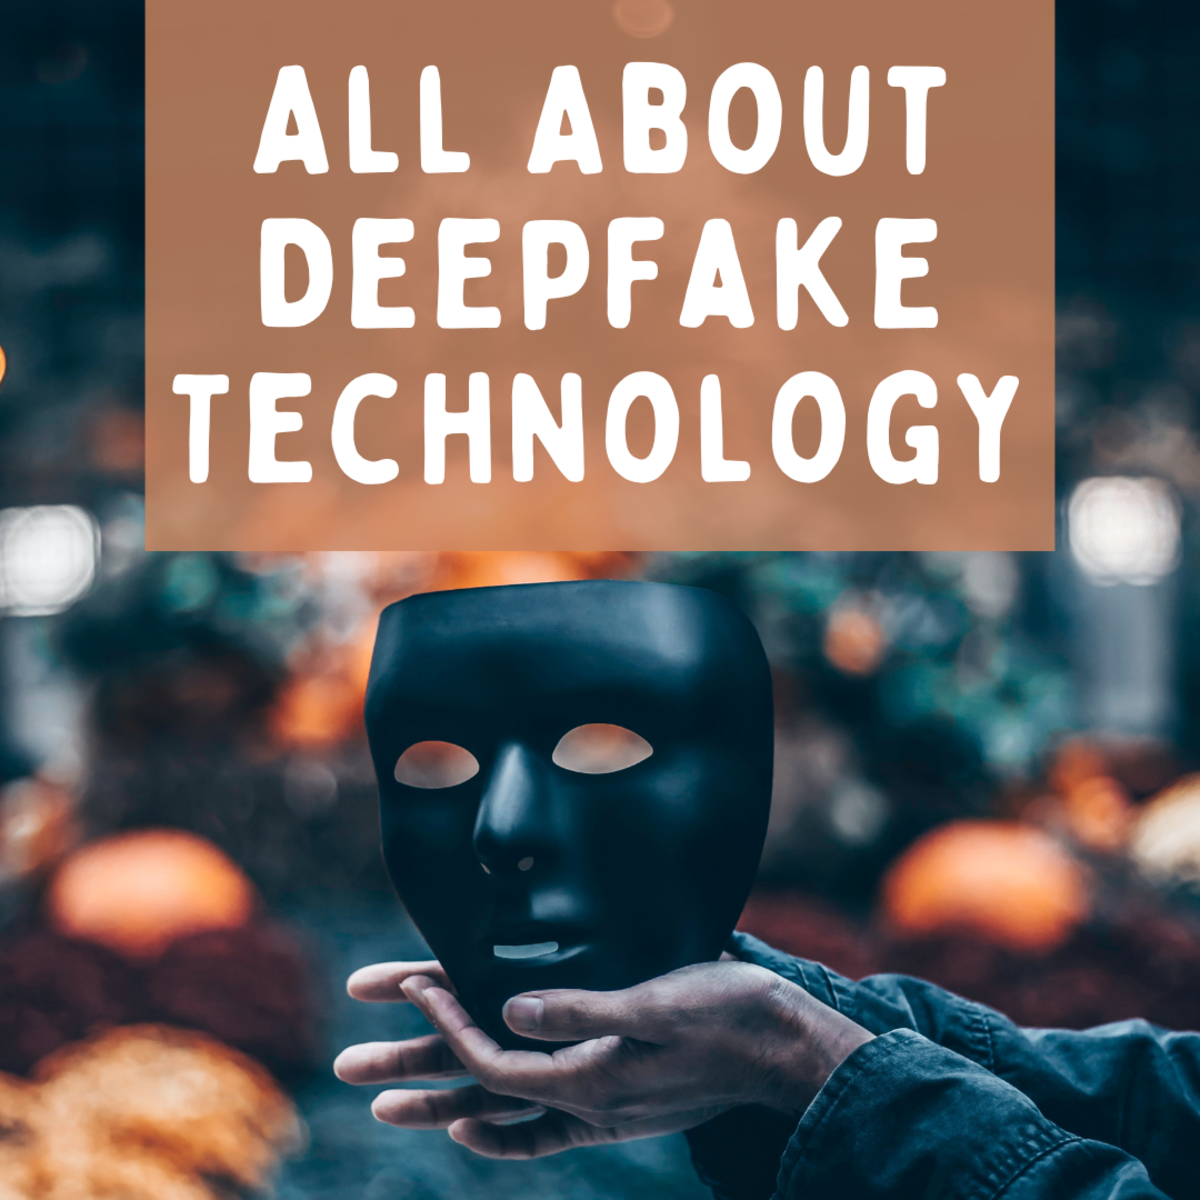 The pros and cons of deepfake technology